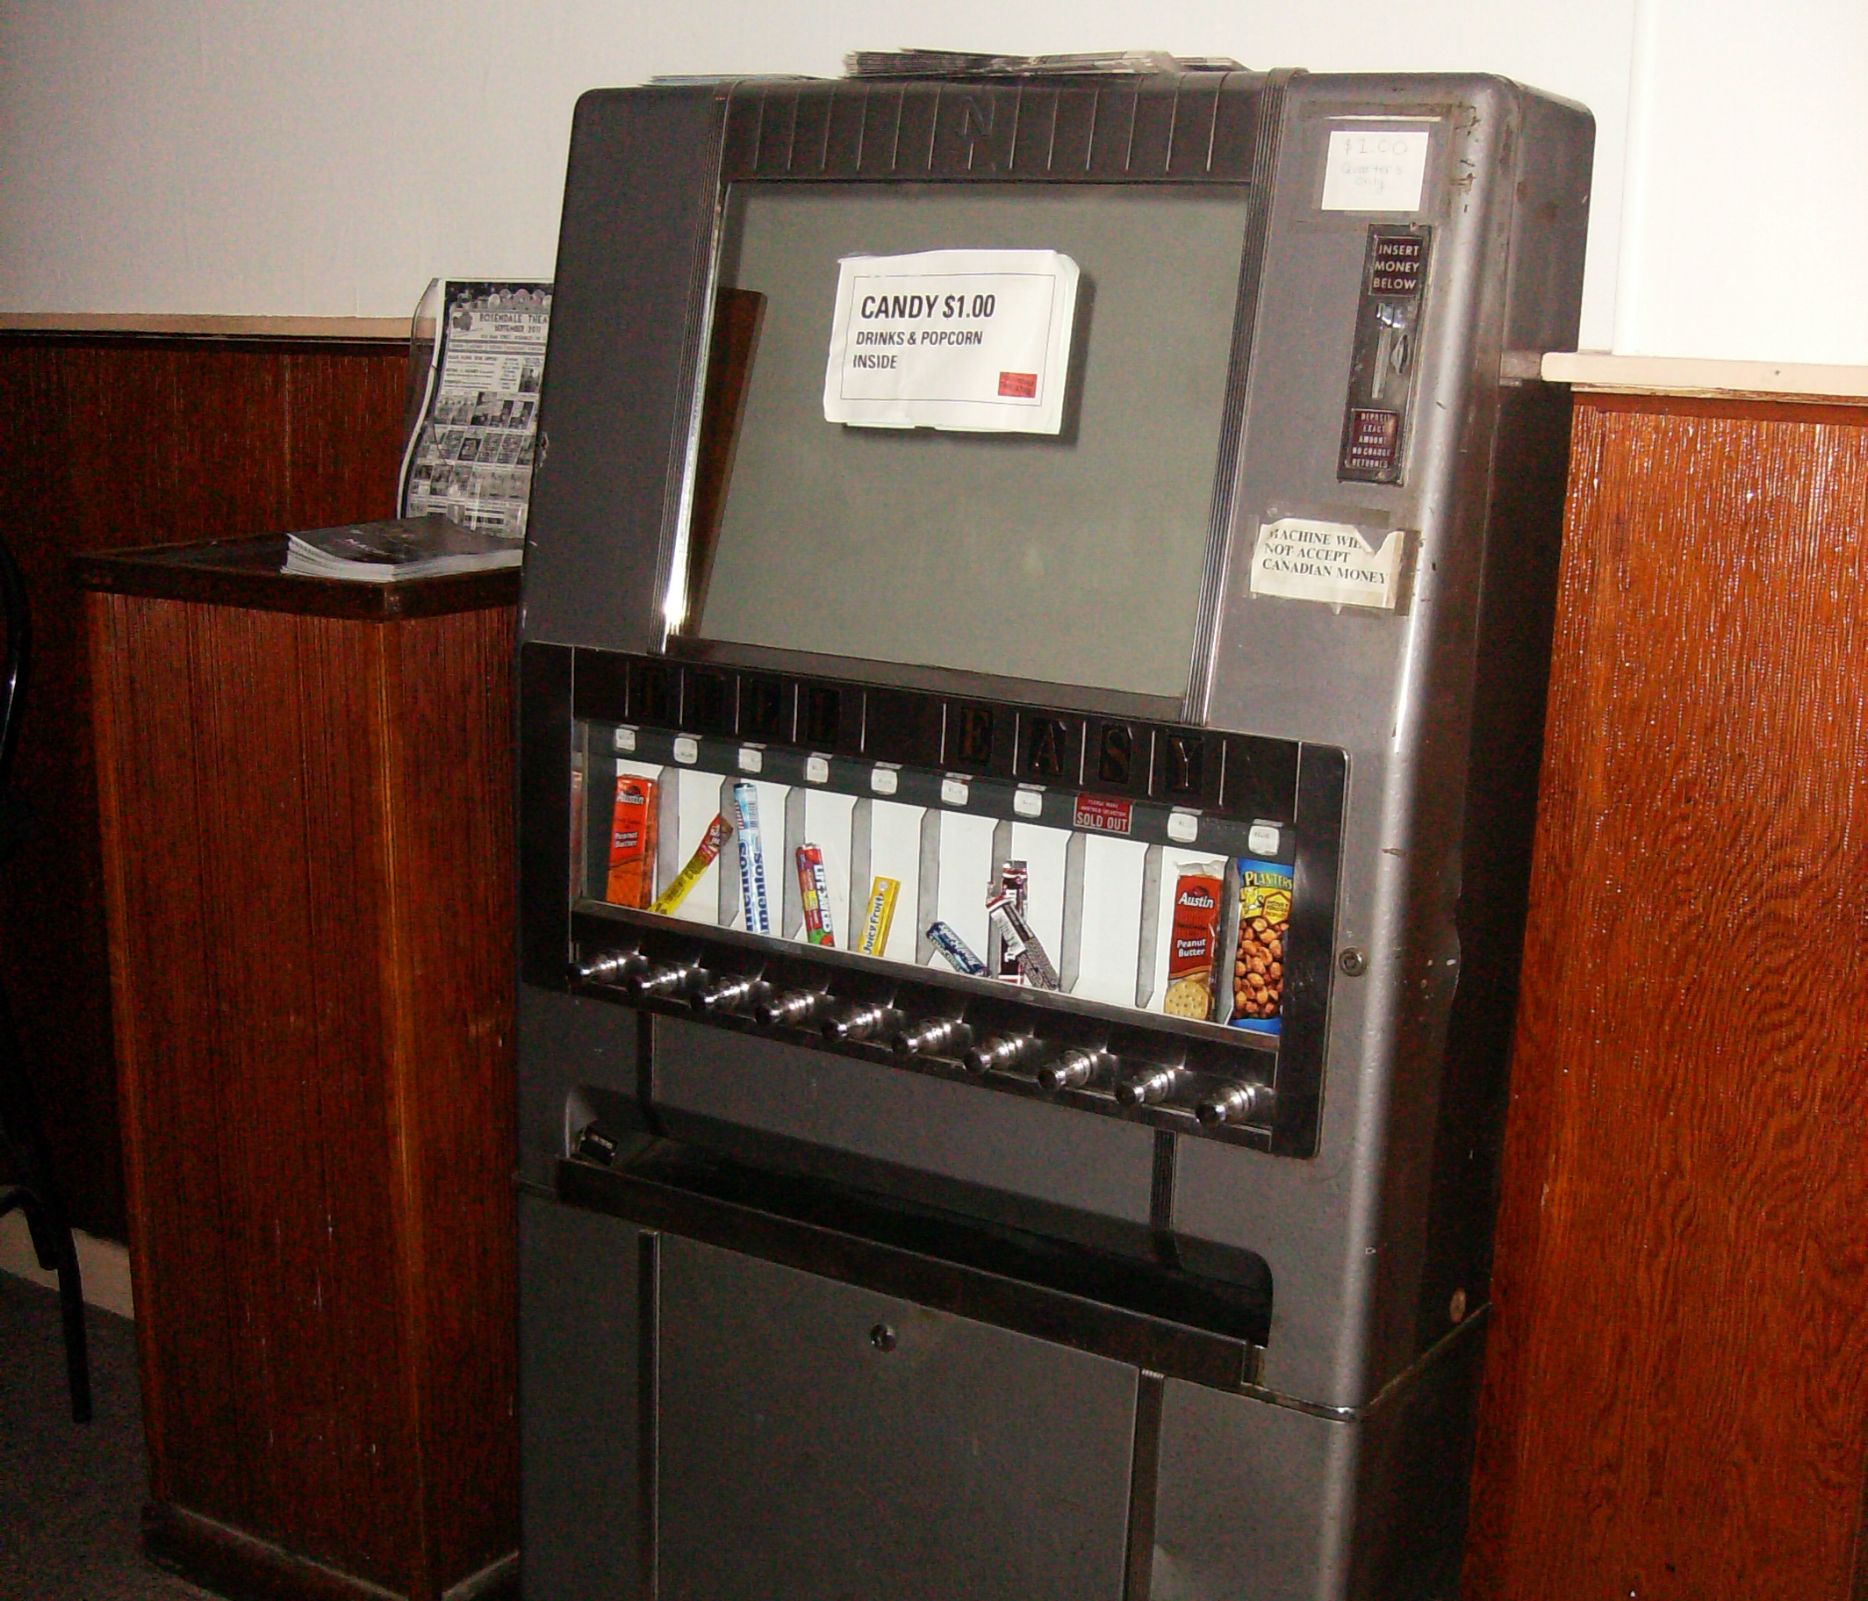 An old vending machine that dispenses candy, in the Rosendale Theatre lobby. Source:  Wikicommons